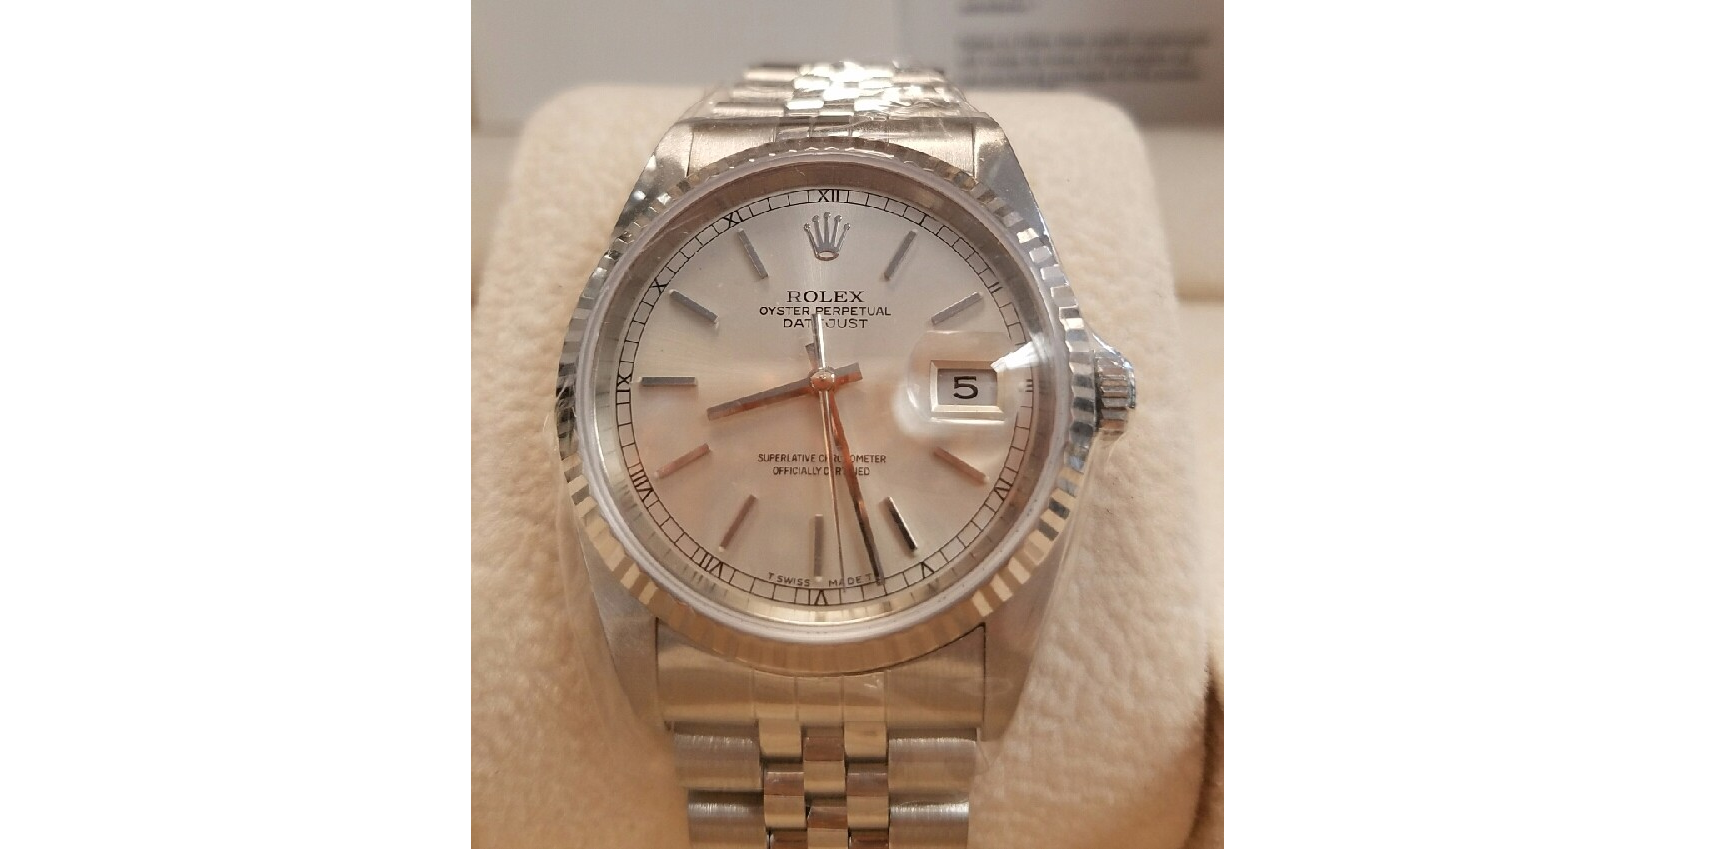 Certified Pre-Owned Rolex Watches